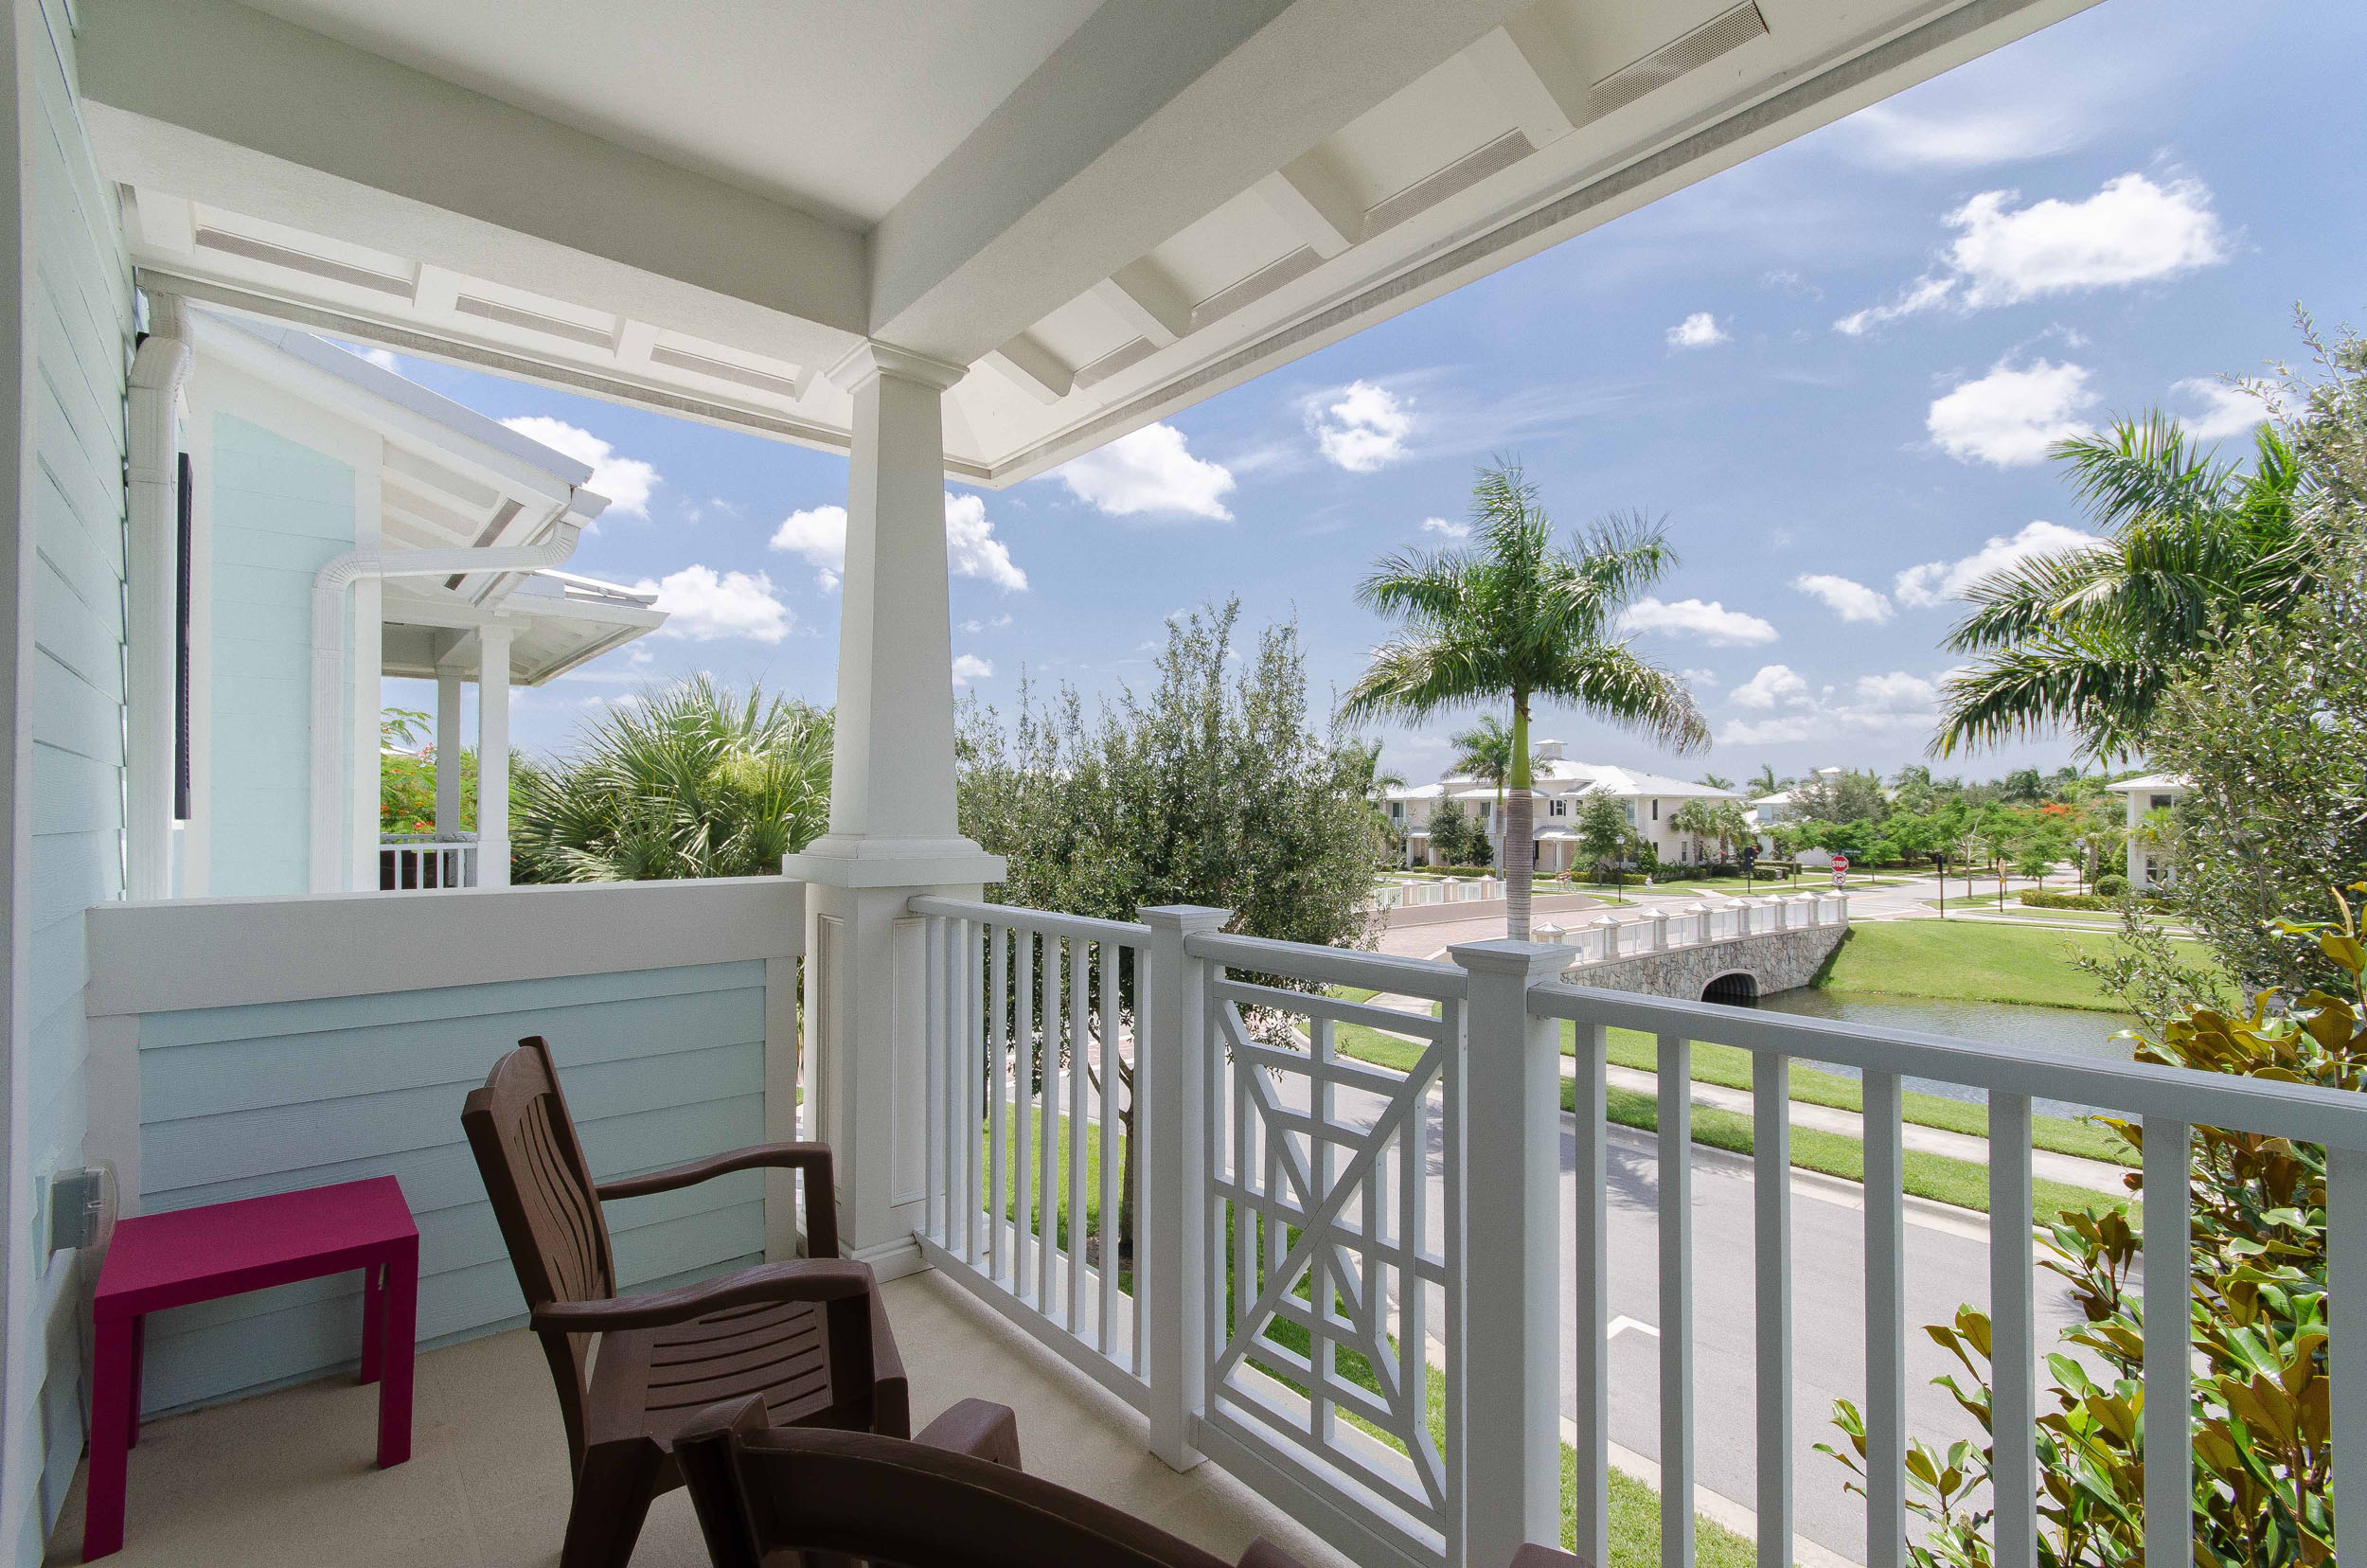 abacoa homes in jupiter florida for sale abacoa jupiter real mallory creek pool mallory creek homes view from abacoa townhome